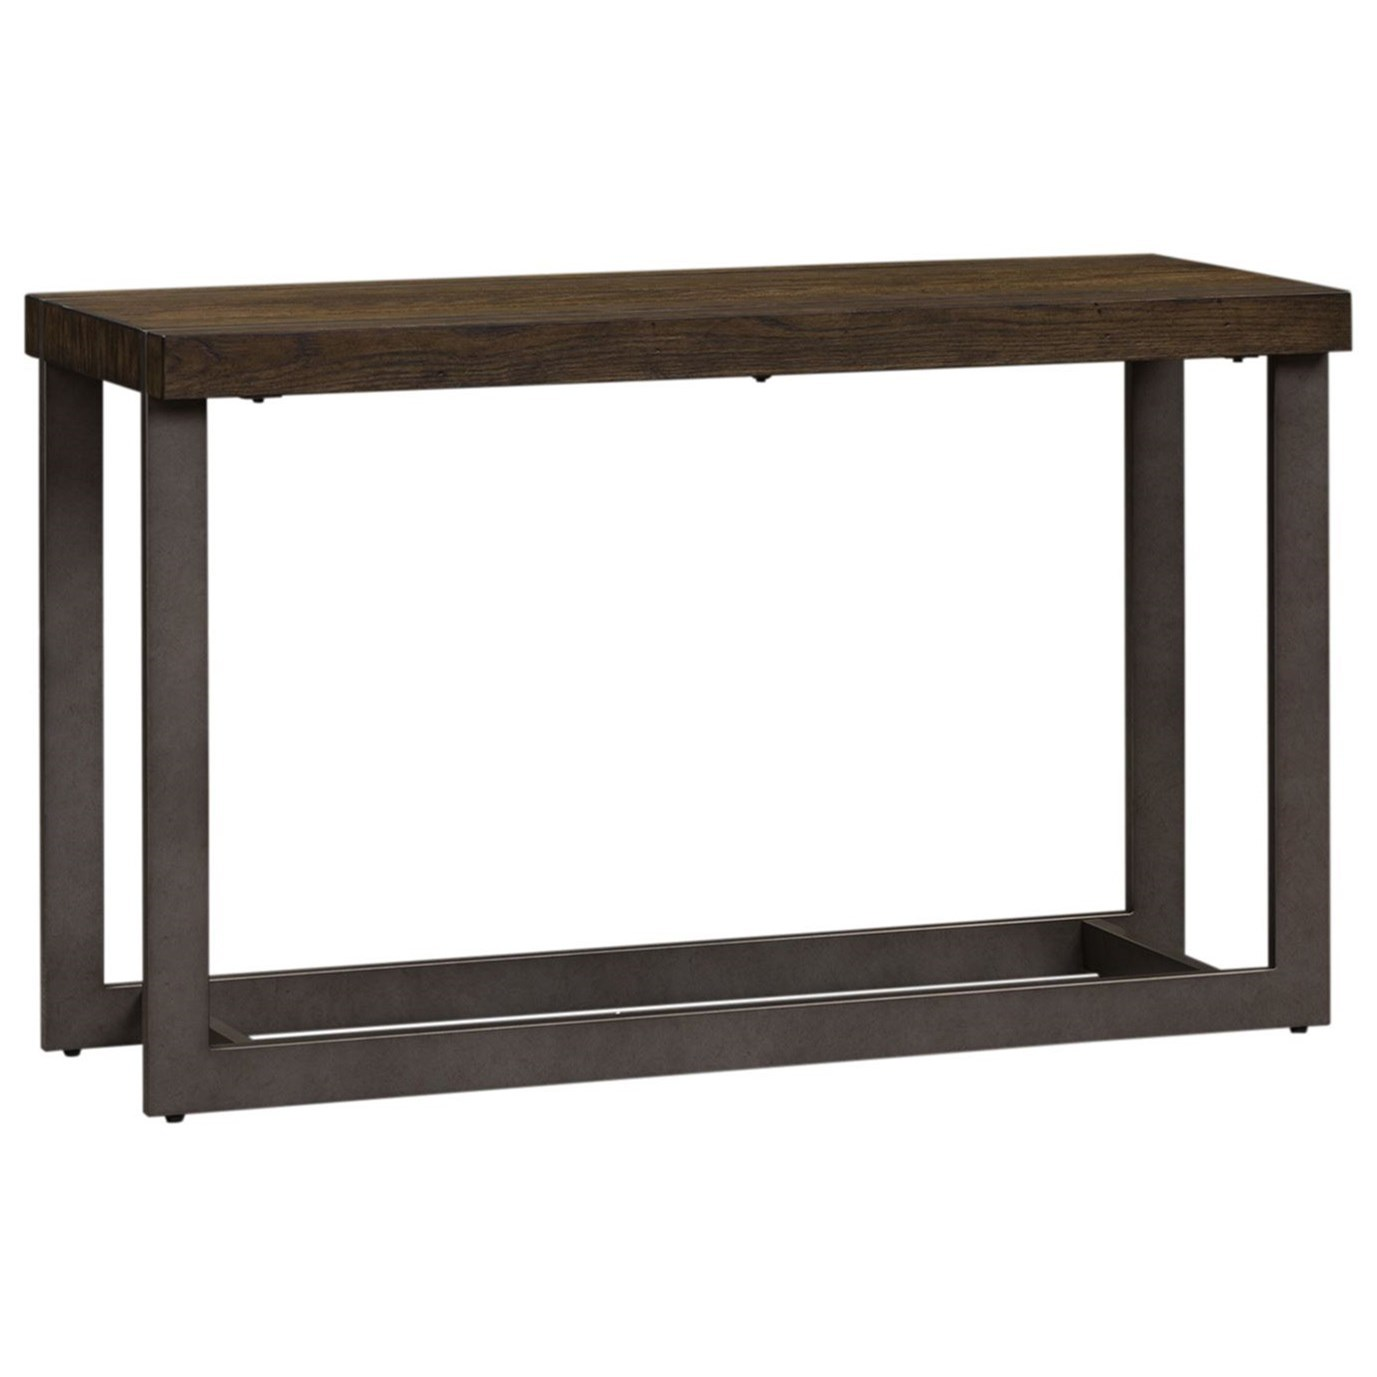 Sorrento Valley Sofa Table by Liberty Furniture at Darvin Furniture